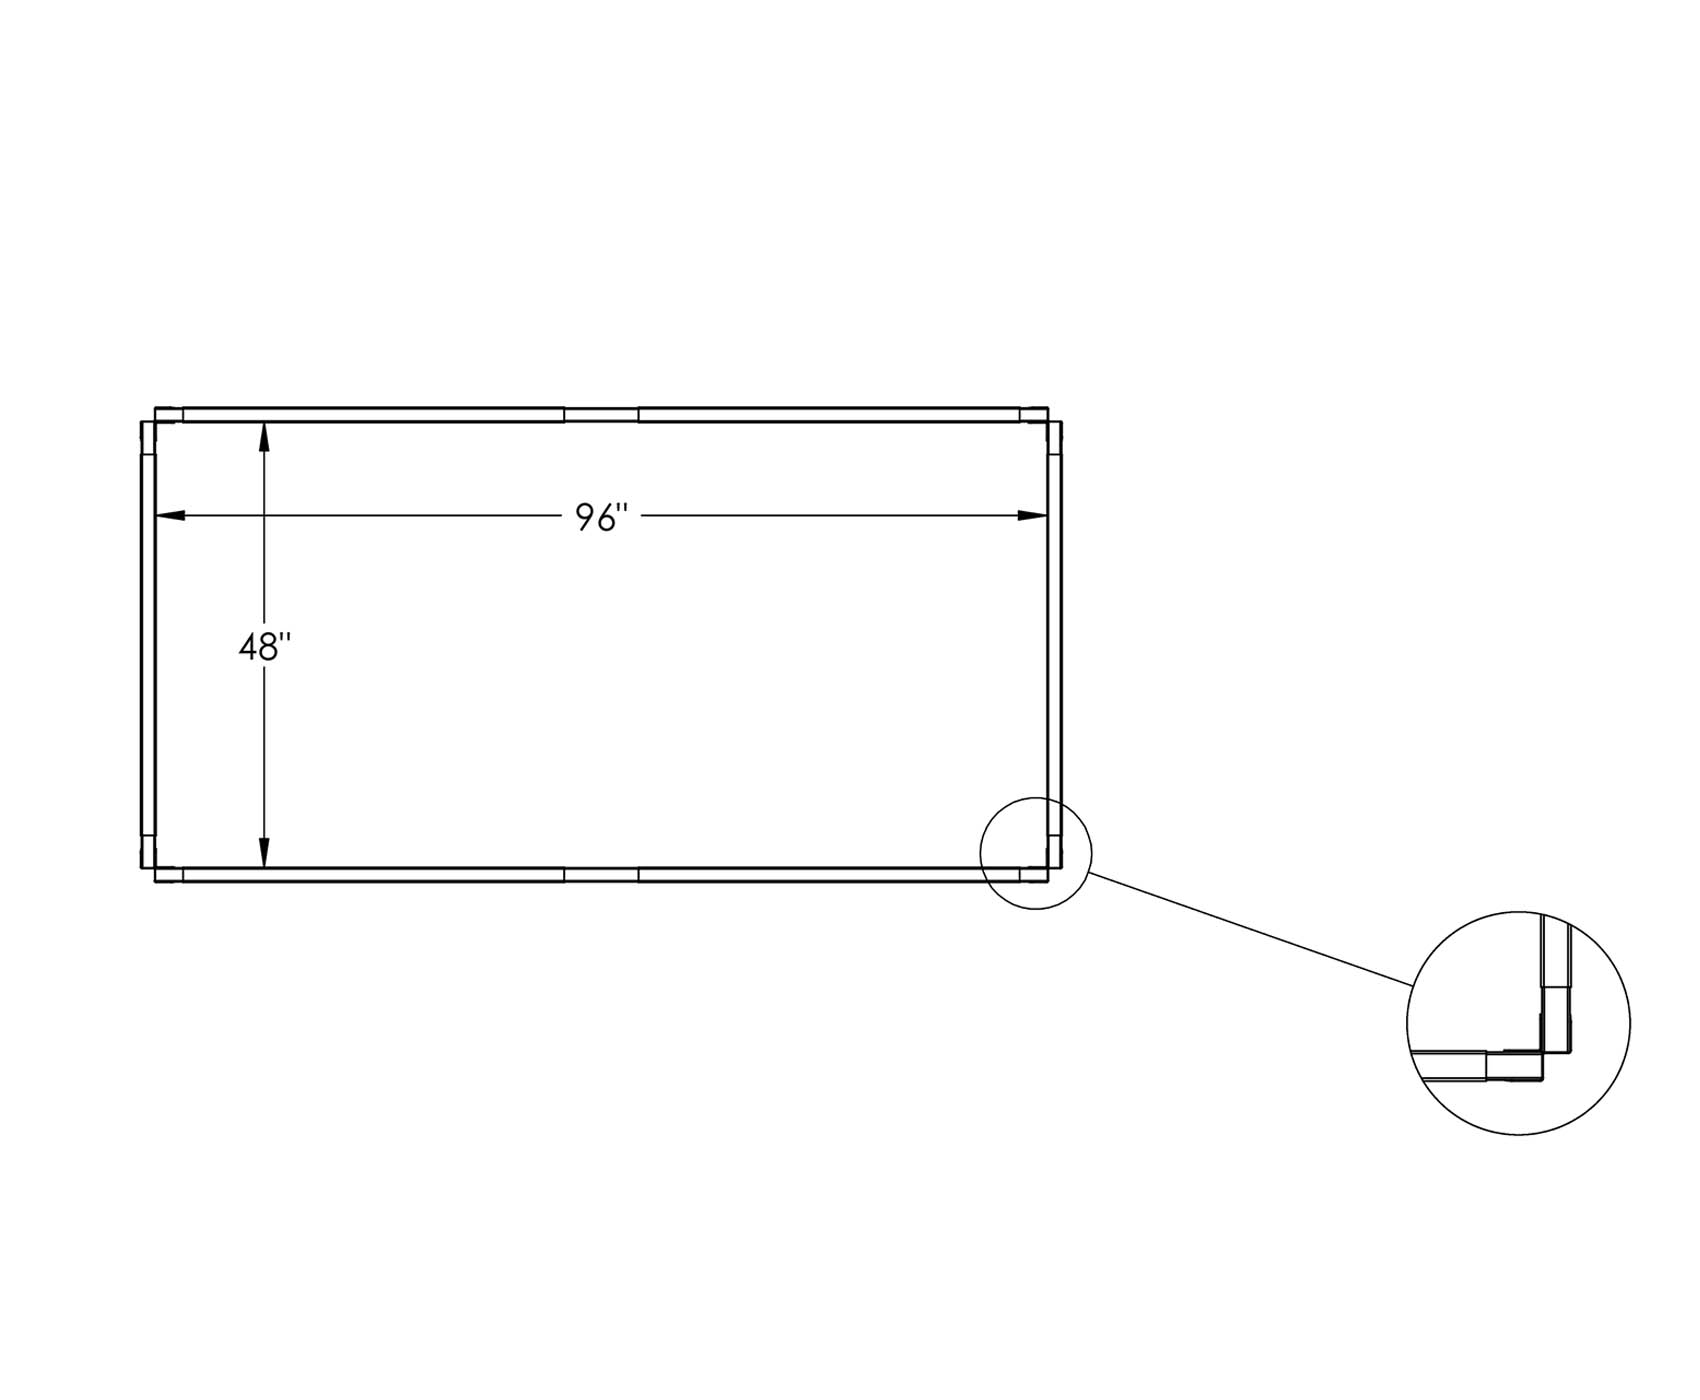 hight resolution of 4x8 diagram of a raised bed garden